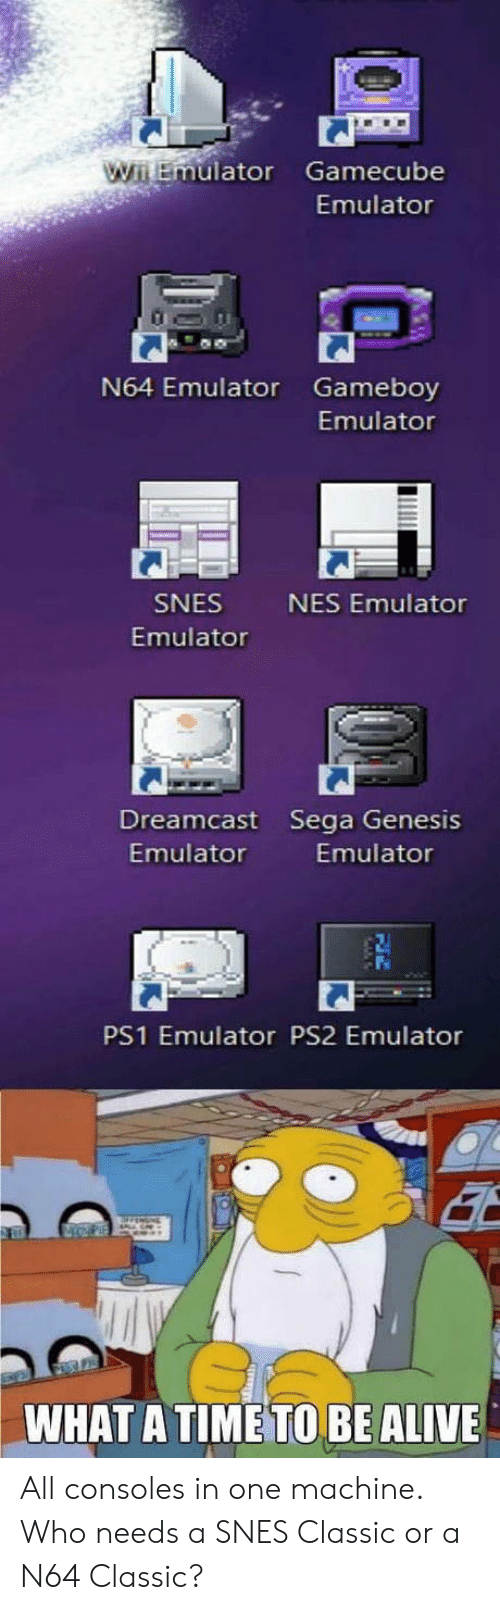 Alive, Genesis, and Time: uator Gamecube  Emulator  N64 Emulator Gameboy  Emulator  SNES  Emulator  NES Emulator  Dreamcast Sega Genesis  Emulator  Emulator  PS1 Emulator PS2 Emulator  WHAT A TIME TO BE ALIVE All consoles in one machine. Who needs a SNES Classic or a N64 Classic?